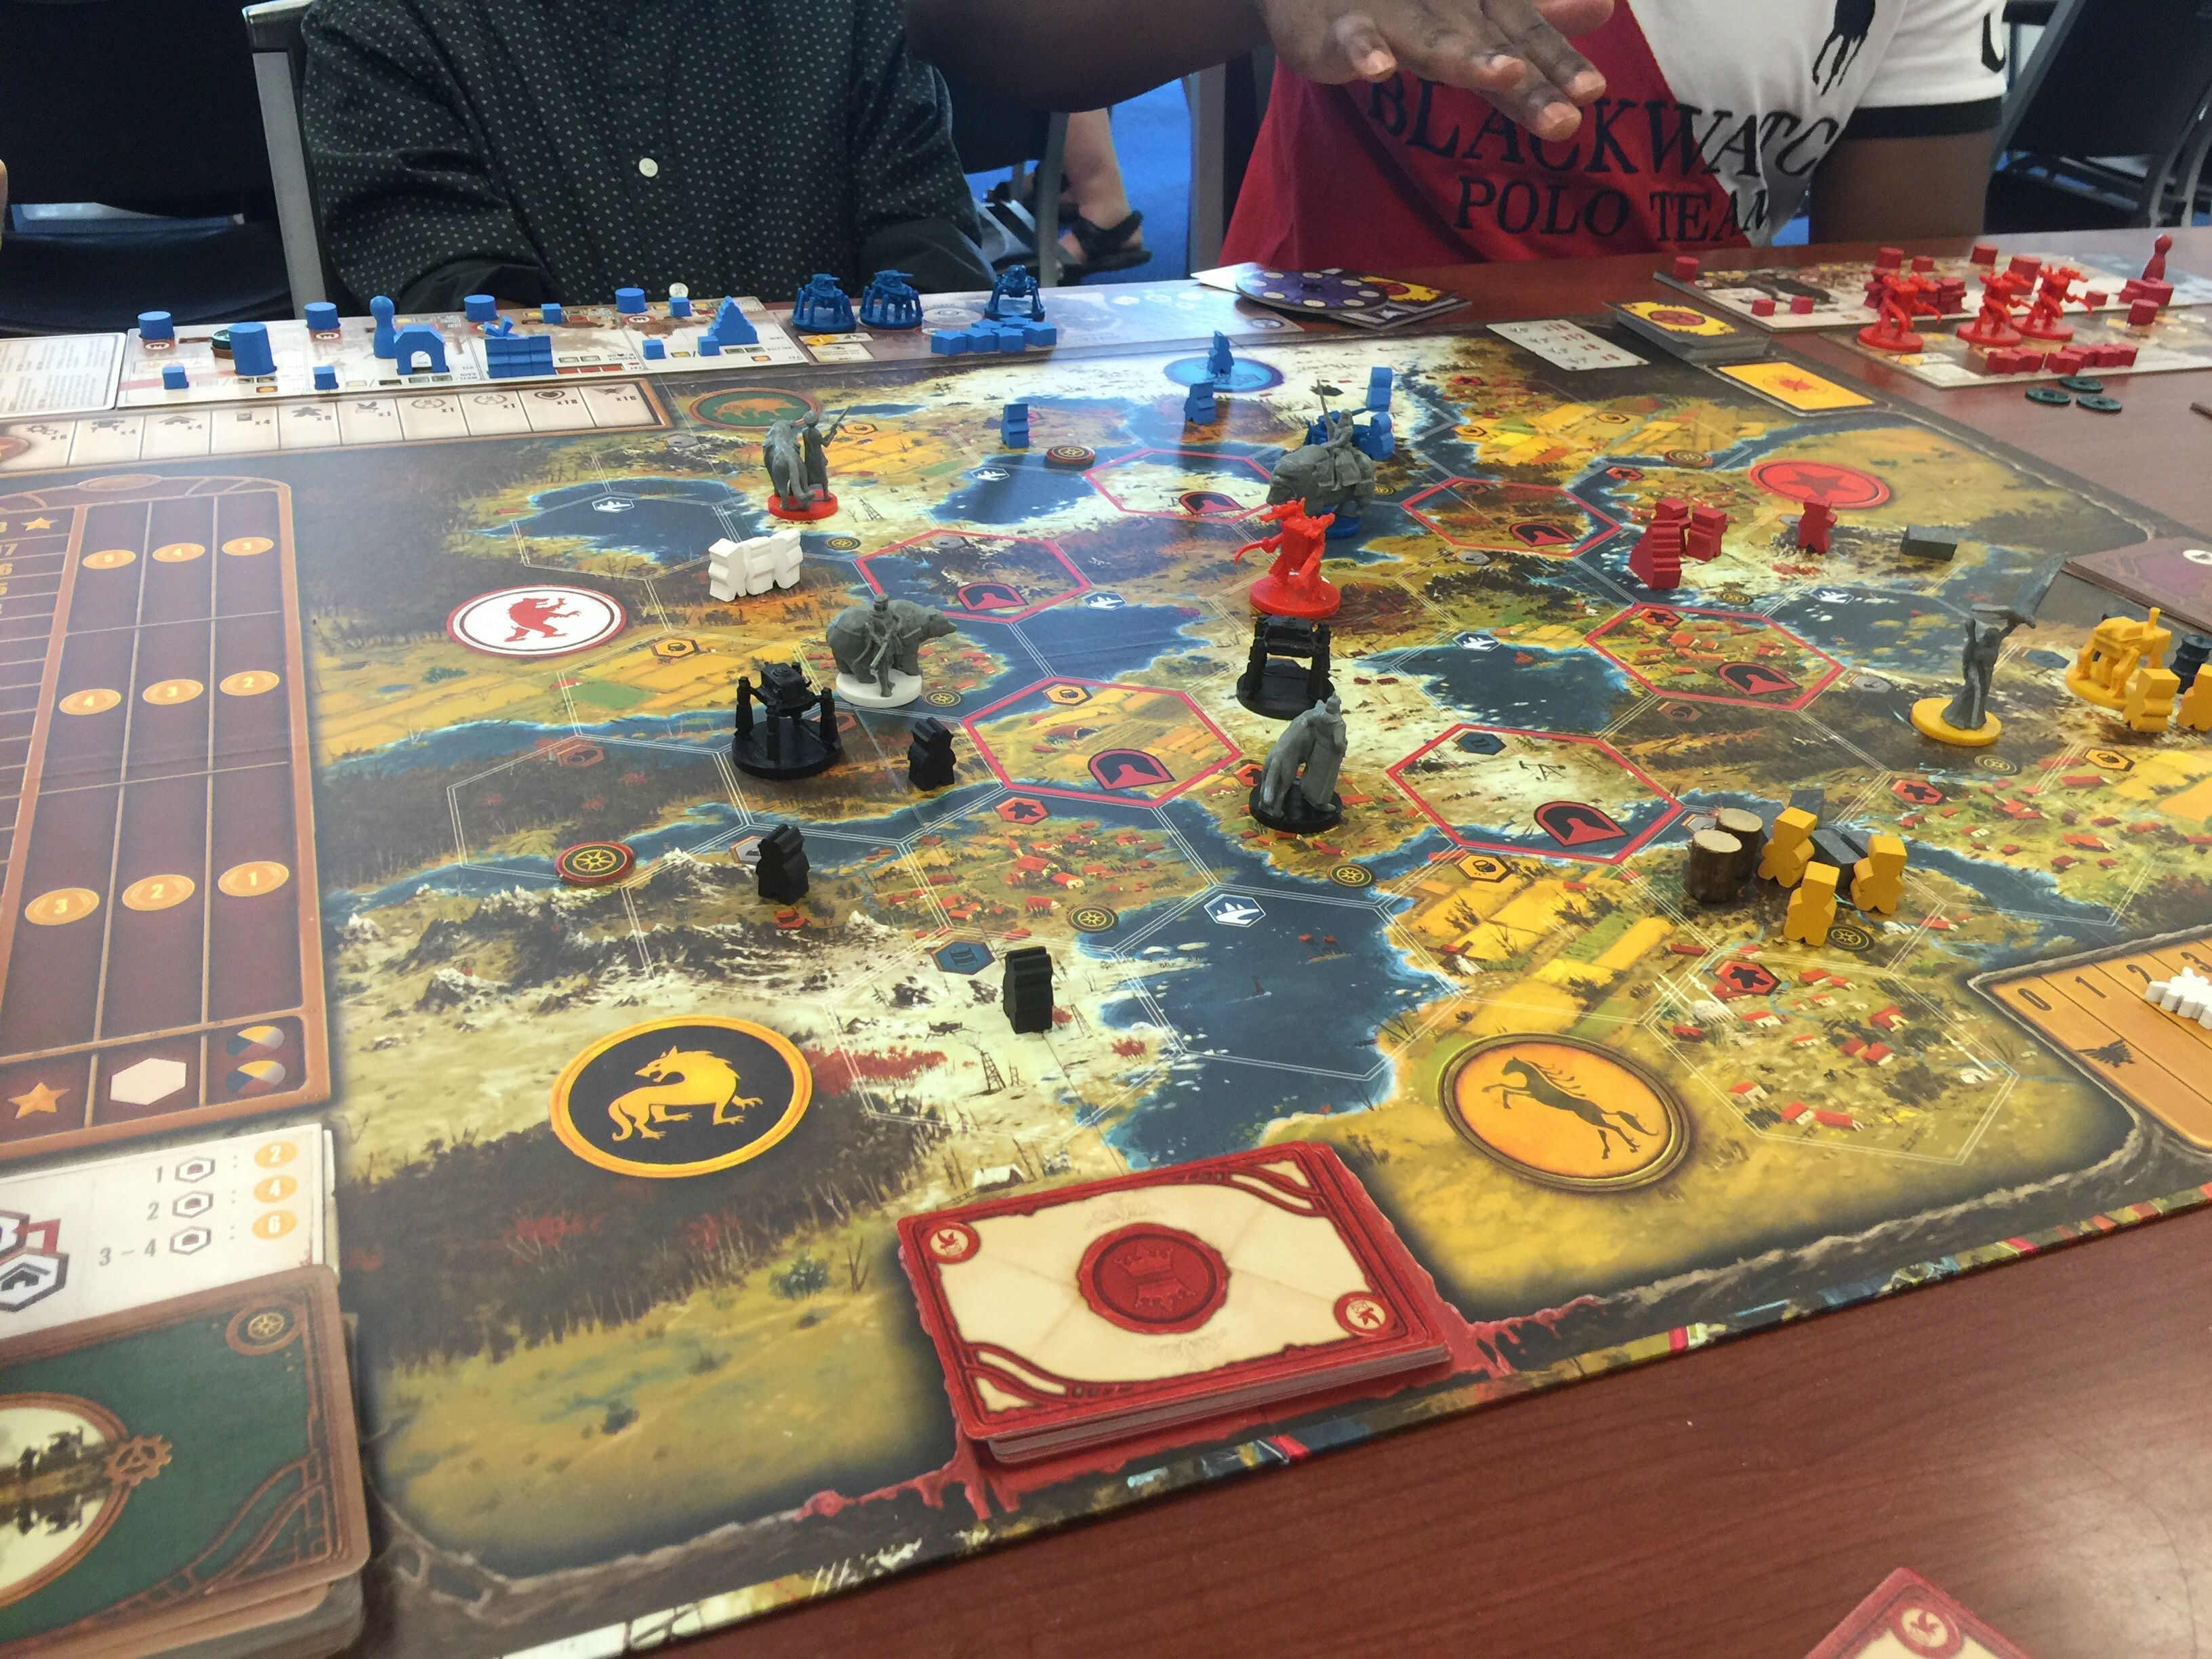 The Twin Cities Board Games Group